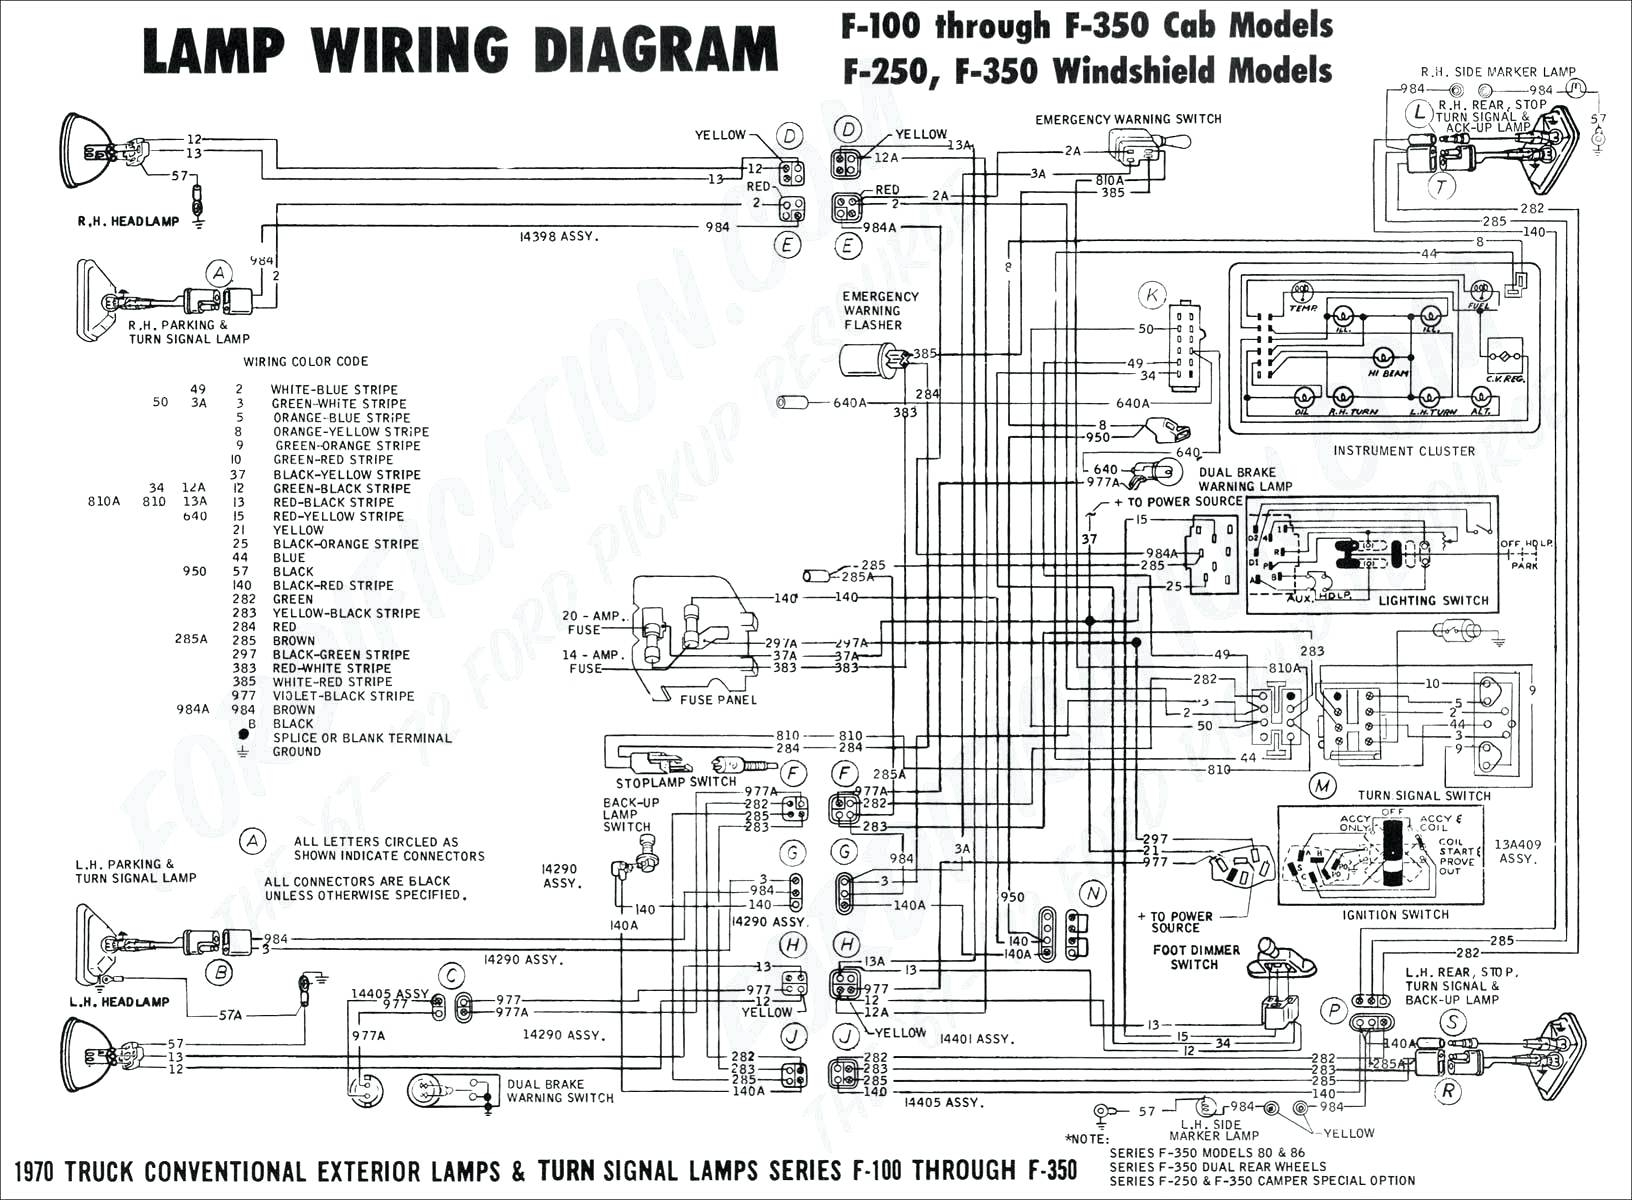 2006 ford f 250 wiring diagram roof 1992 ford f 250 wiring diagram ford f250 trailer wiring harness diagram | free wiring diagram #6